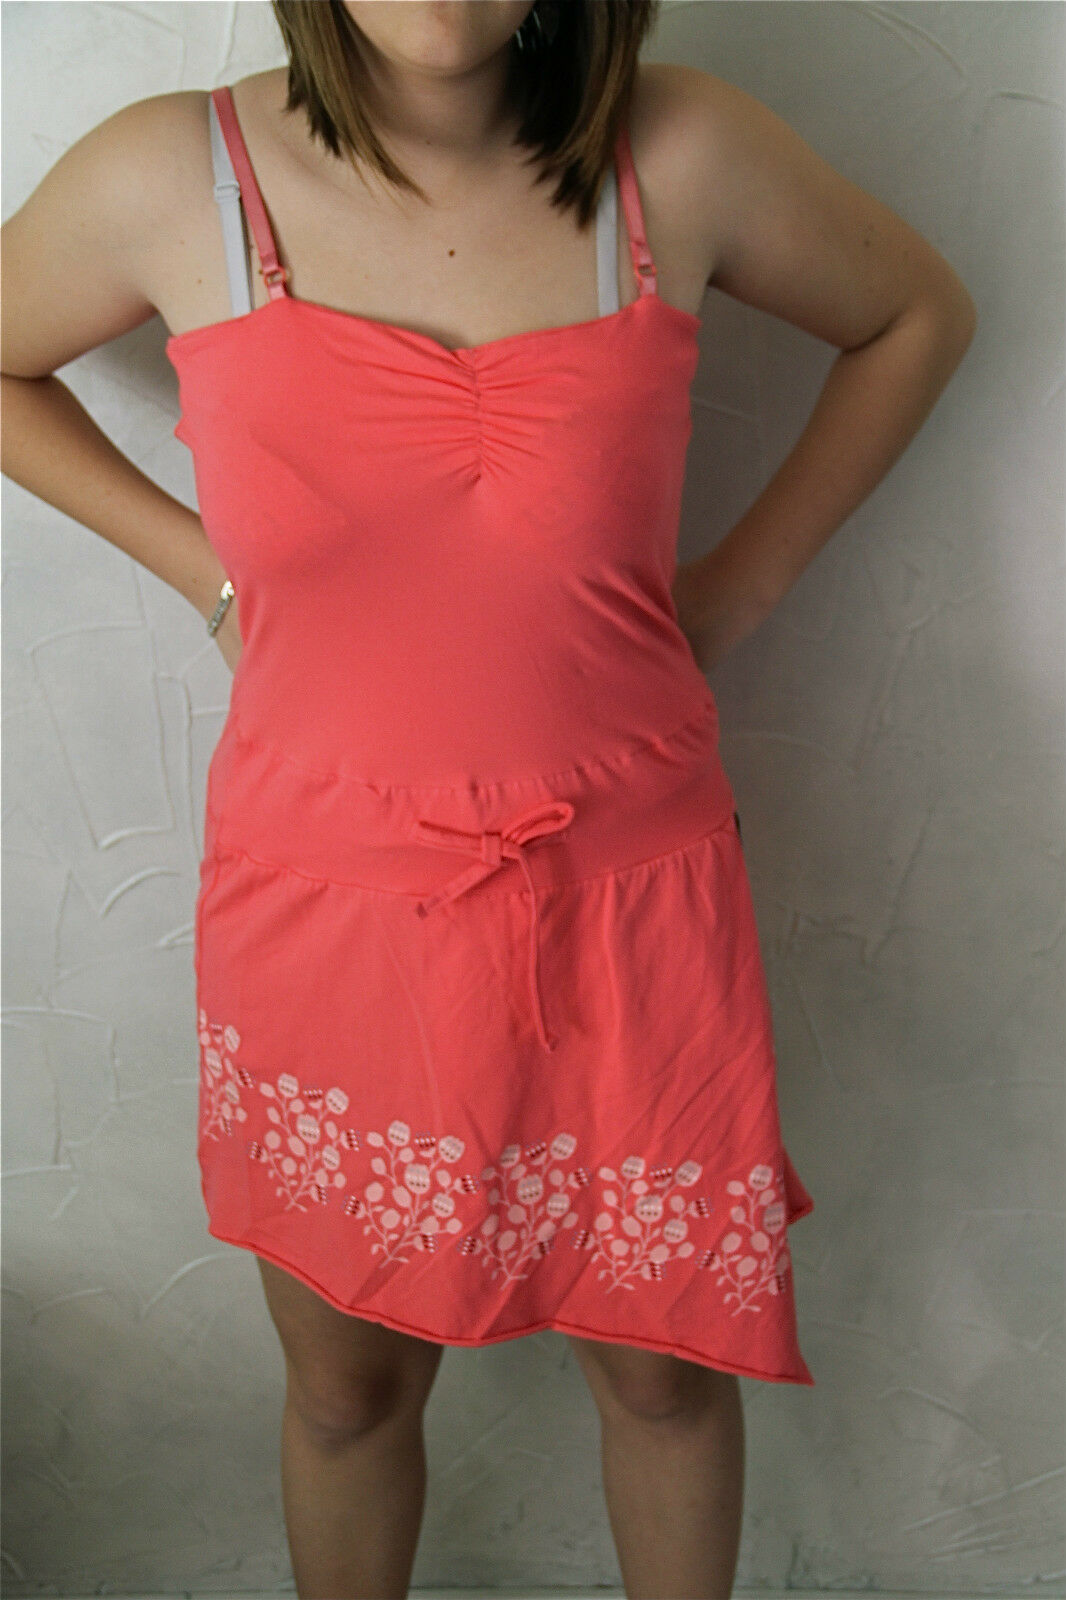 d3fead3ad9 neon pink KANABEACH poom-gd SIZE 38 NEW value Dress LABEL ...